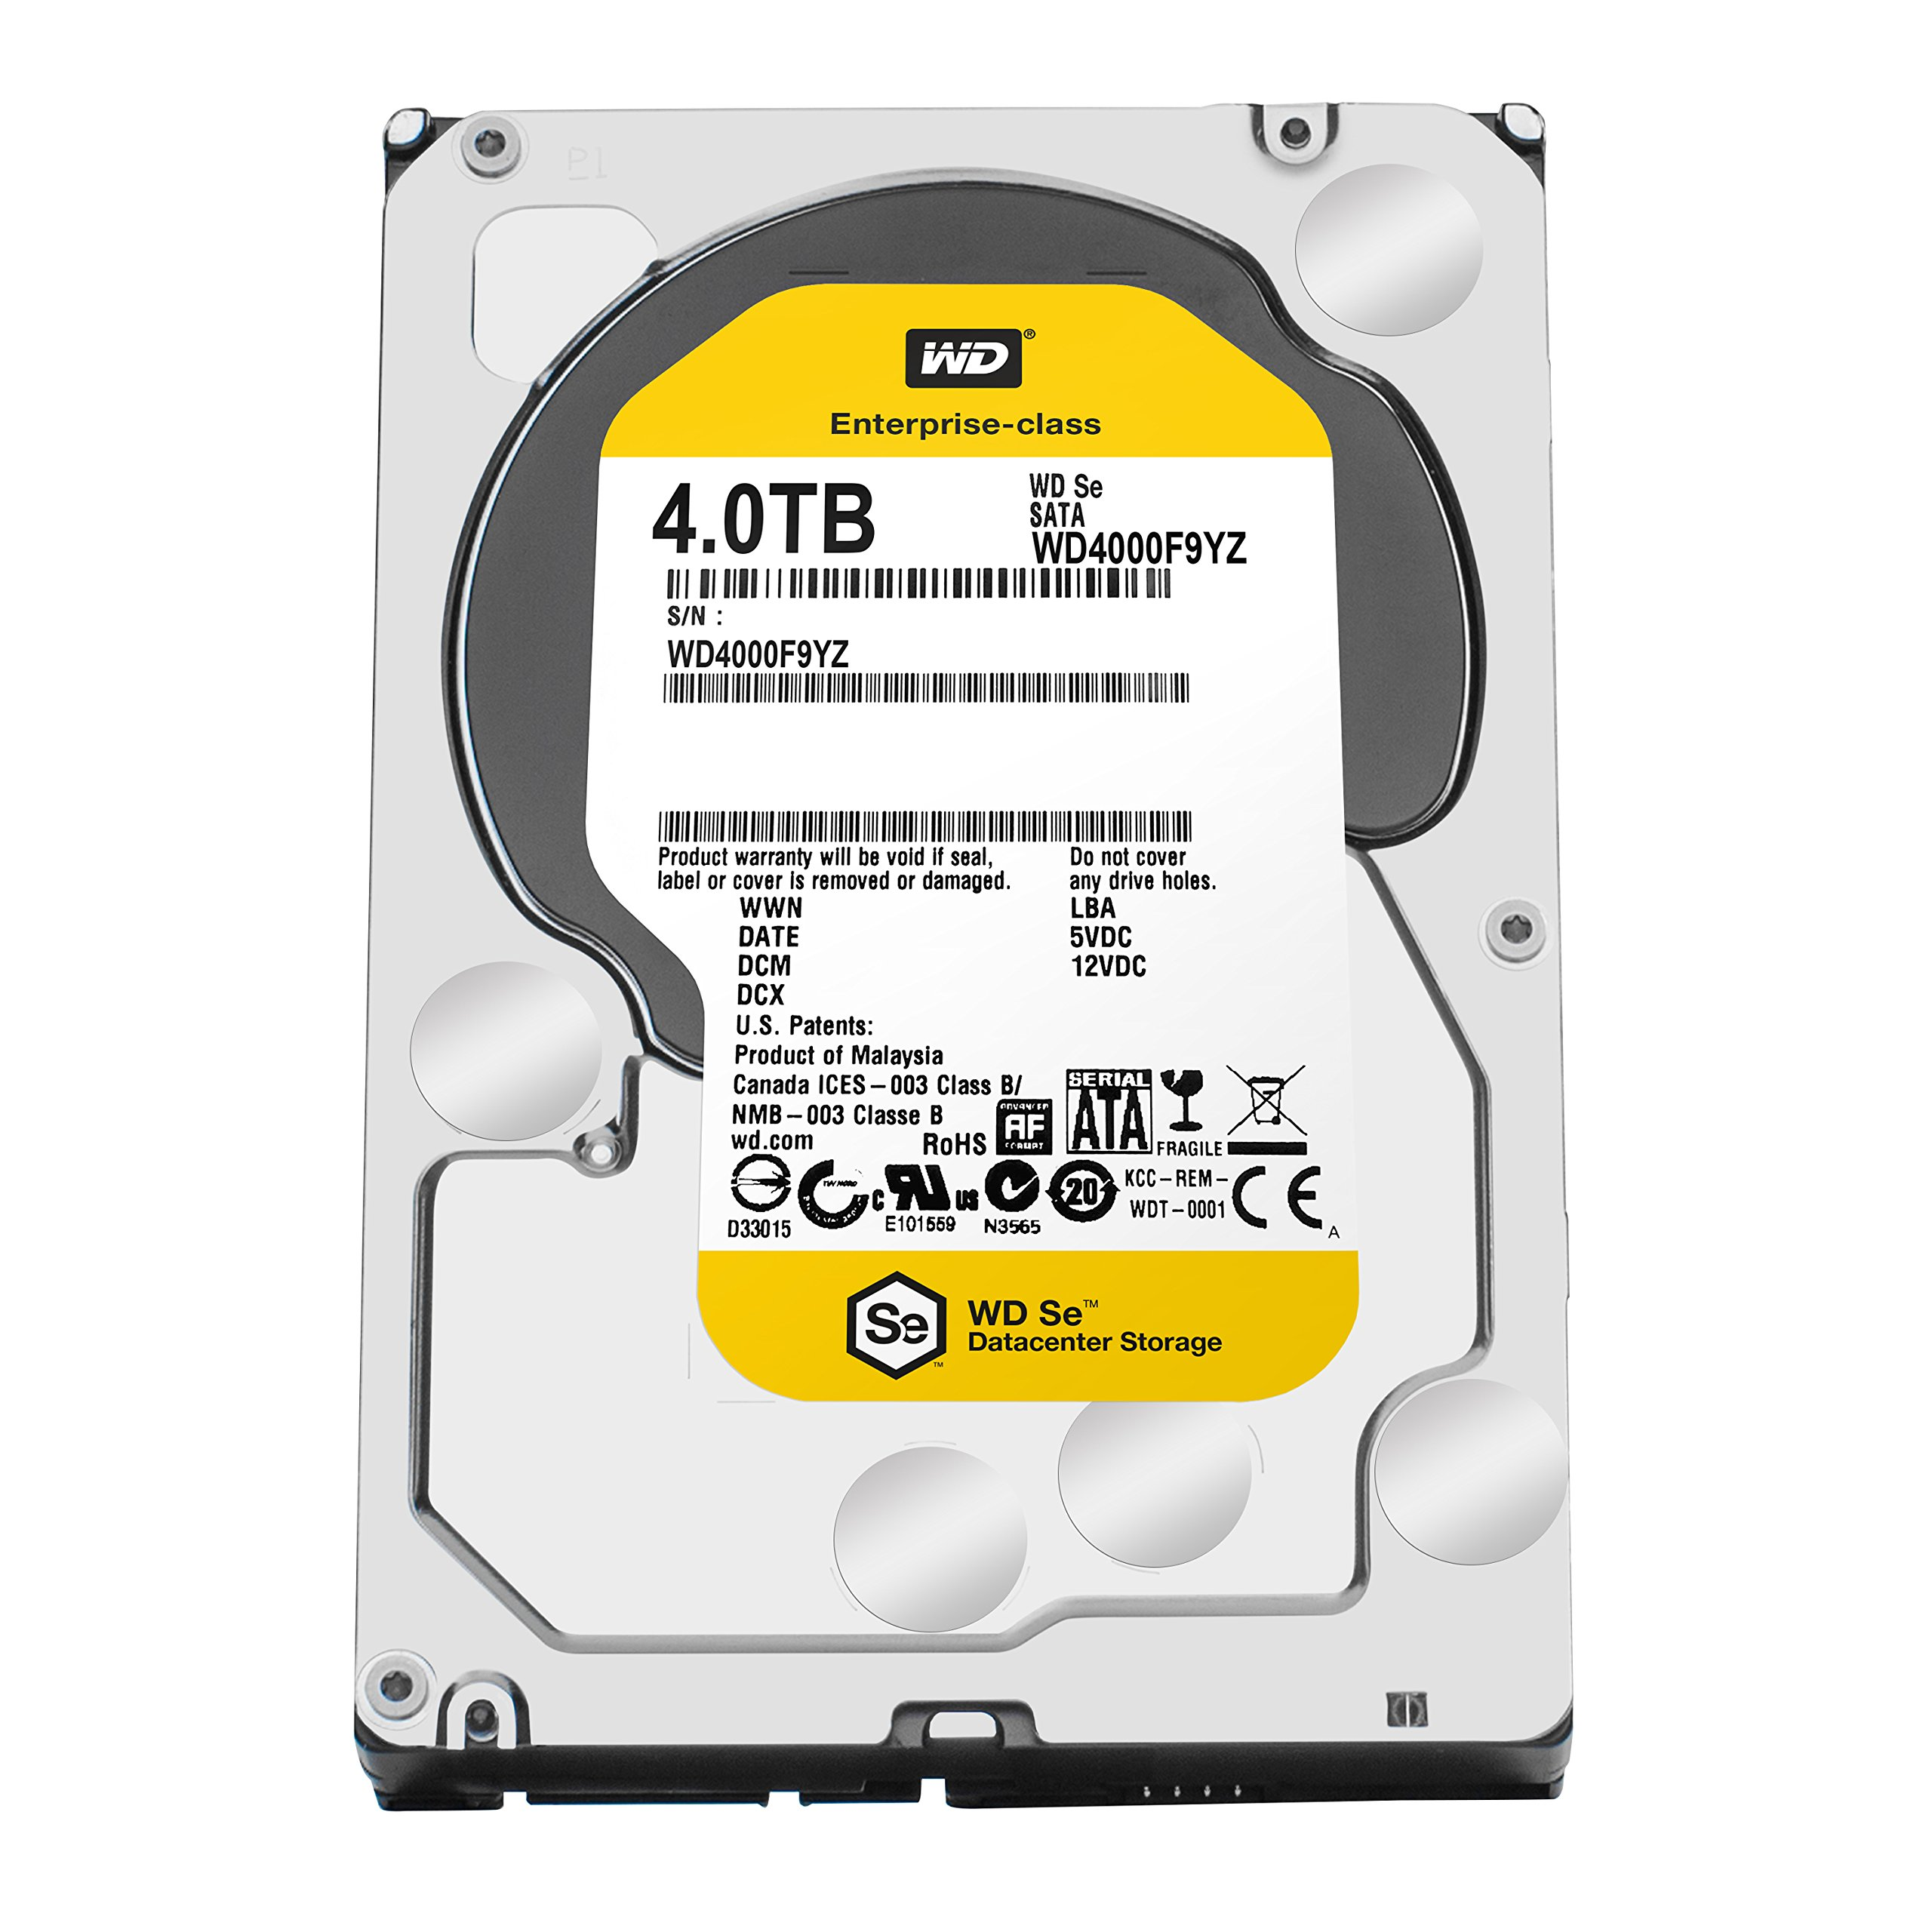 WD SE 4TB Datacenter Hard Disk Drive - 7200 RPM SATA 6 Gb/s 64MB Cache 3.5 Inch - WD4000F9YZ by Western Digital